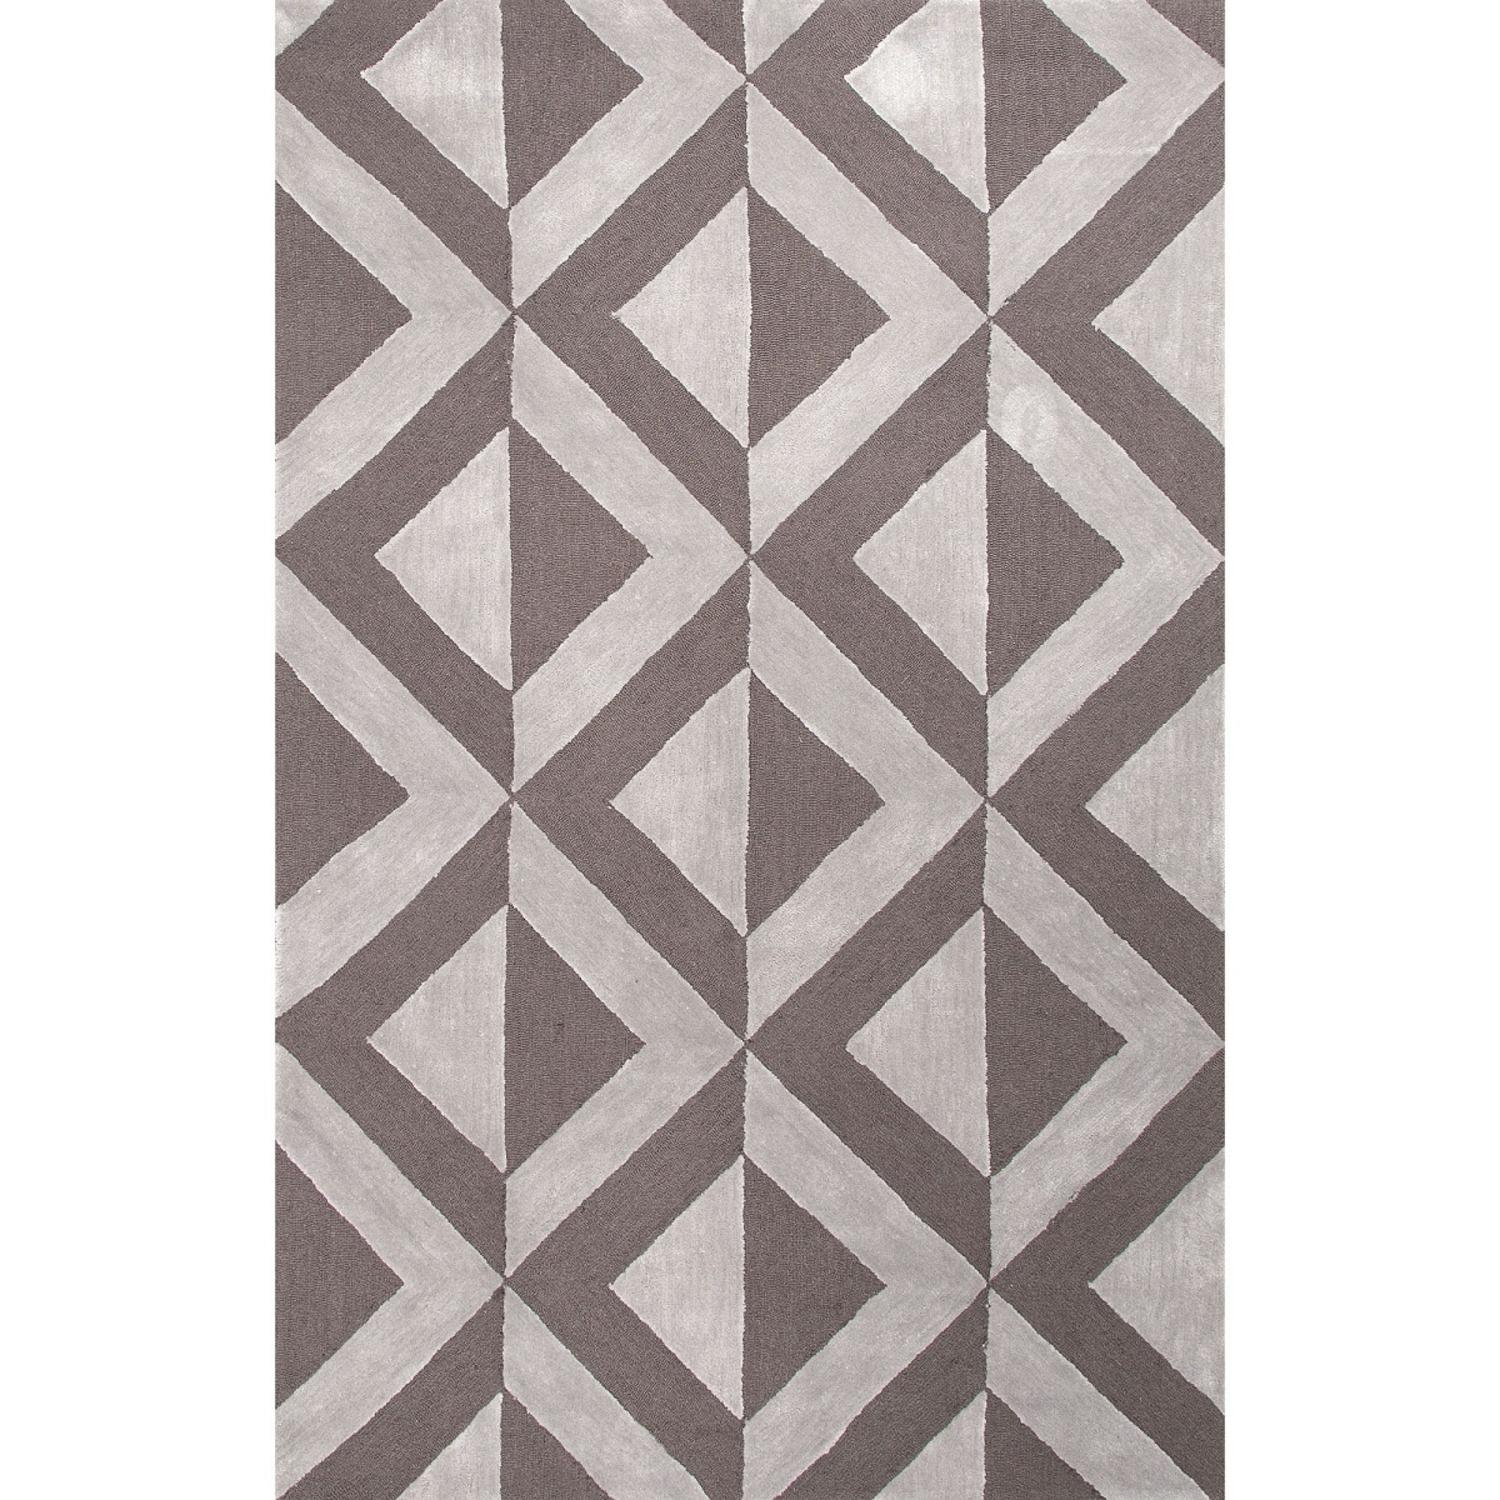 8' X 10' Light Gray and Chocolate Brown Modern Pyramids Hand Tufted Area Throw Rug